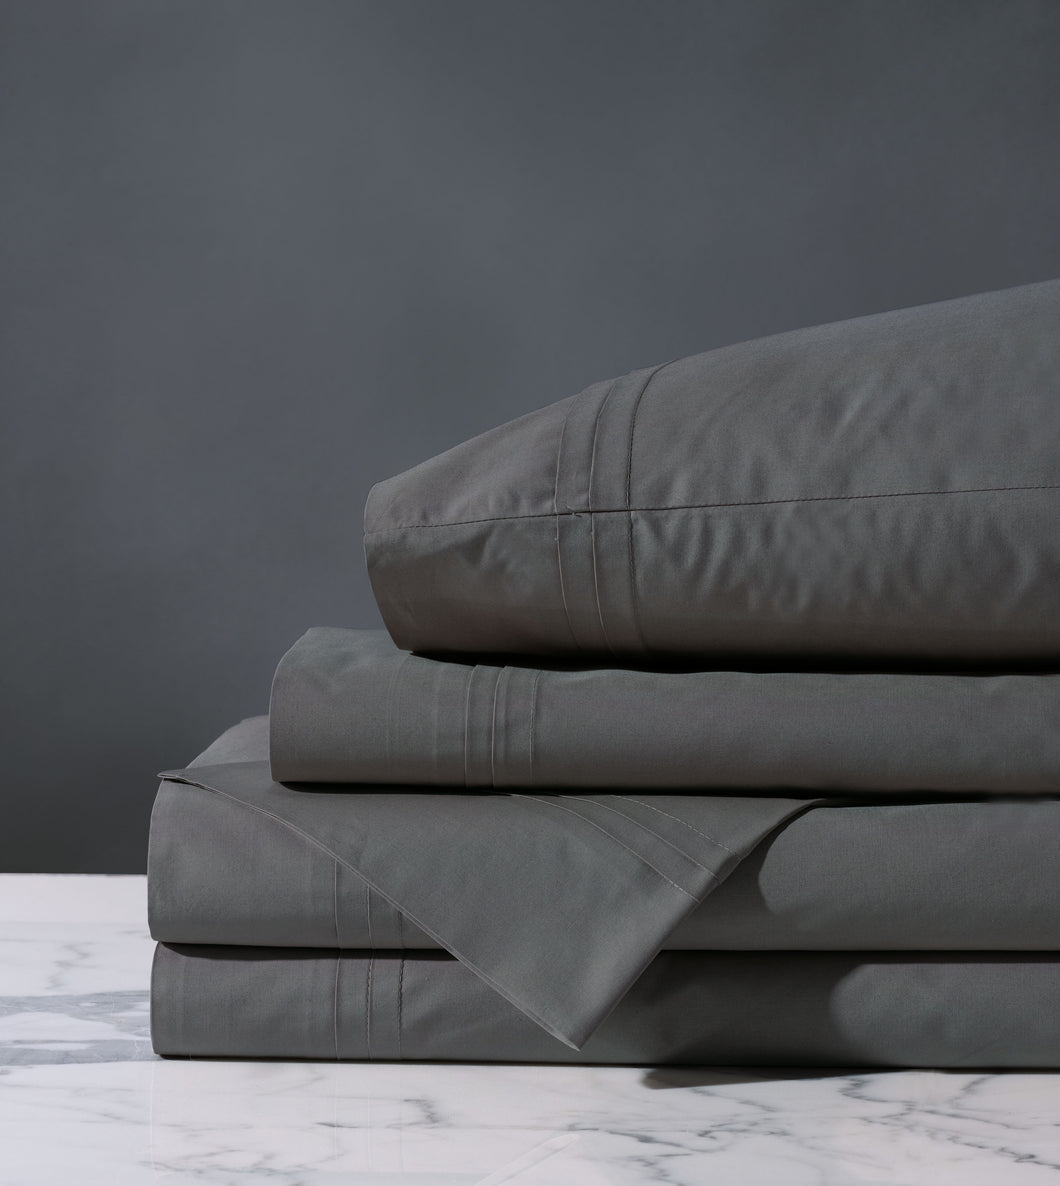 Vail Slate Gray Luxury Fine Linen Pleated Percale Sheet Set